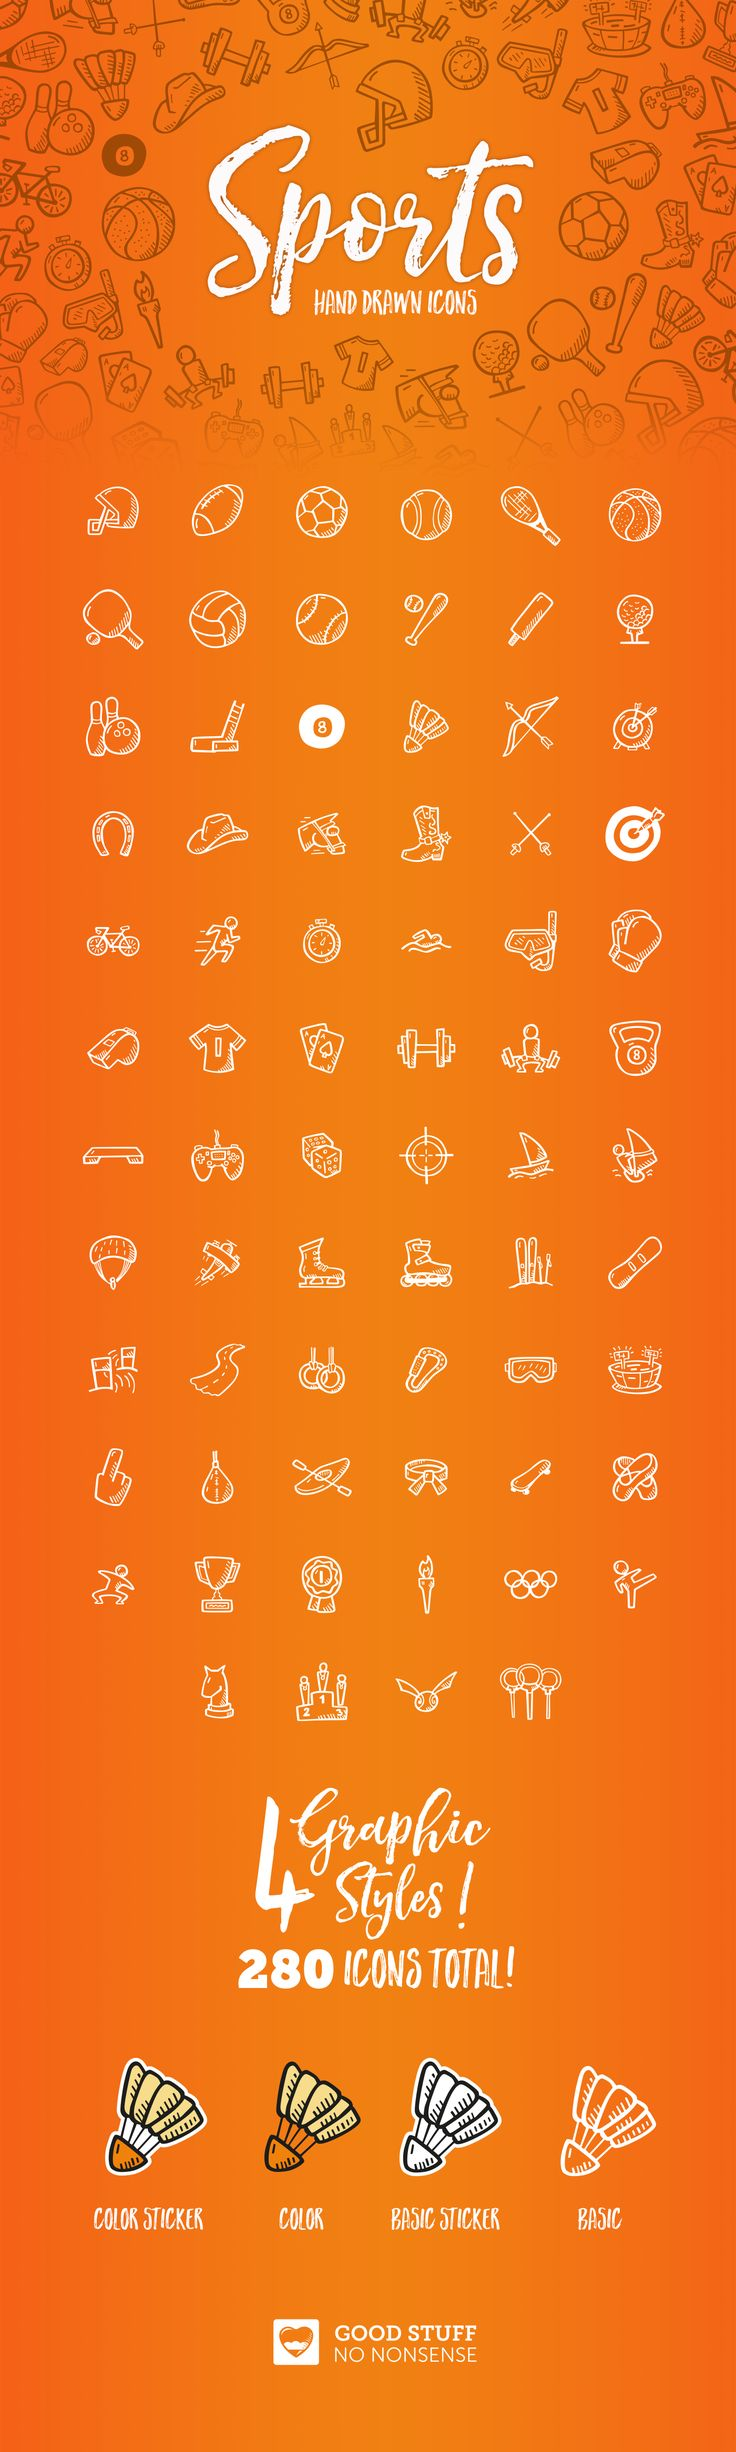 Hand Drawn Sports Icons made by @weboutloud #icons #sport #sports #activity #fit #illustration #icon